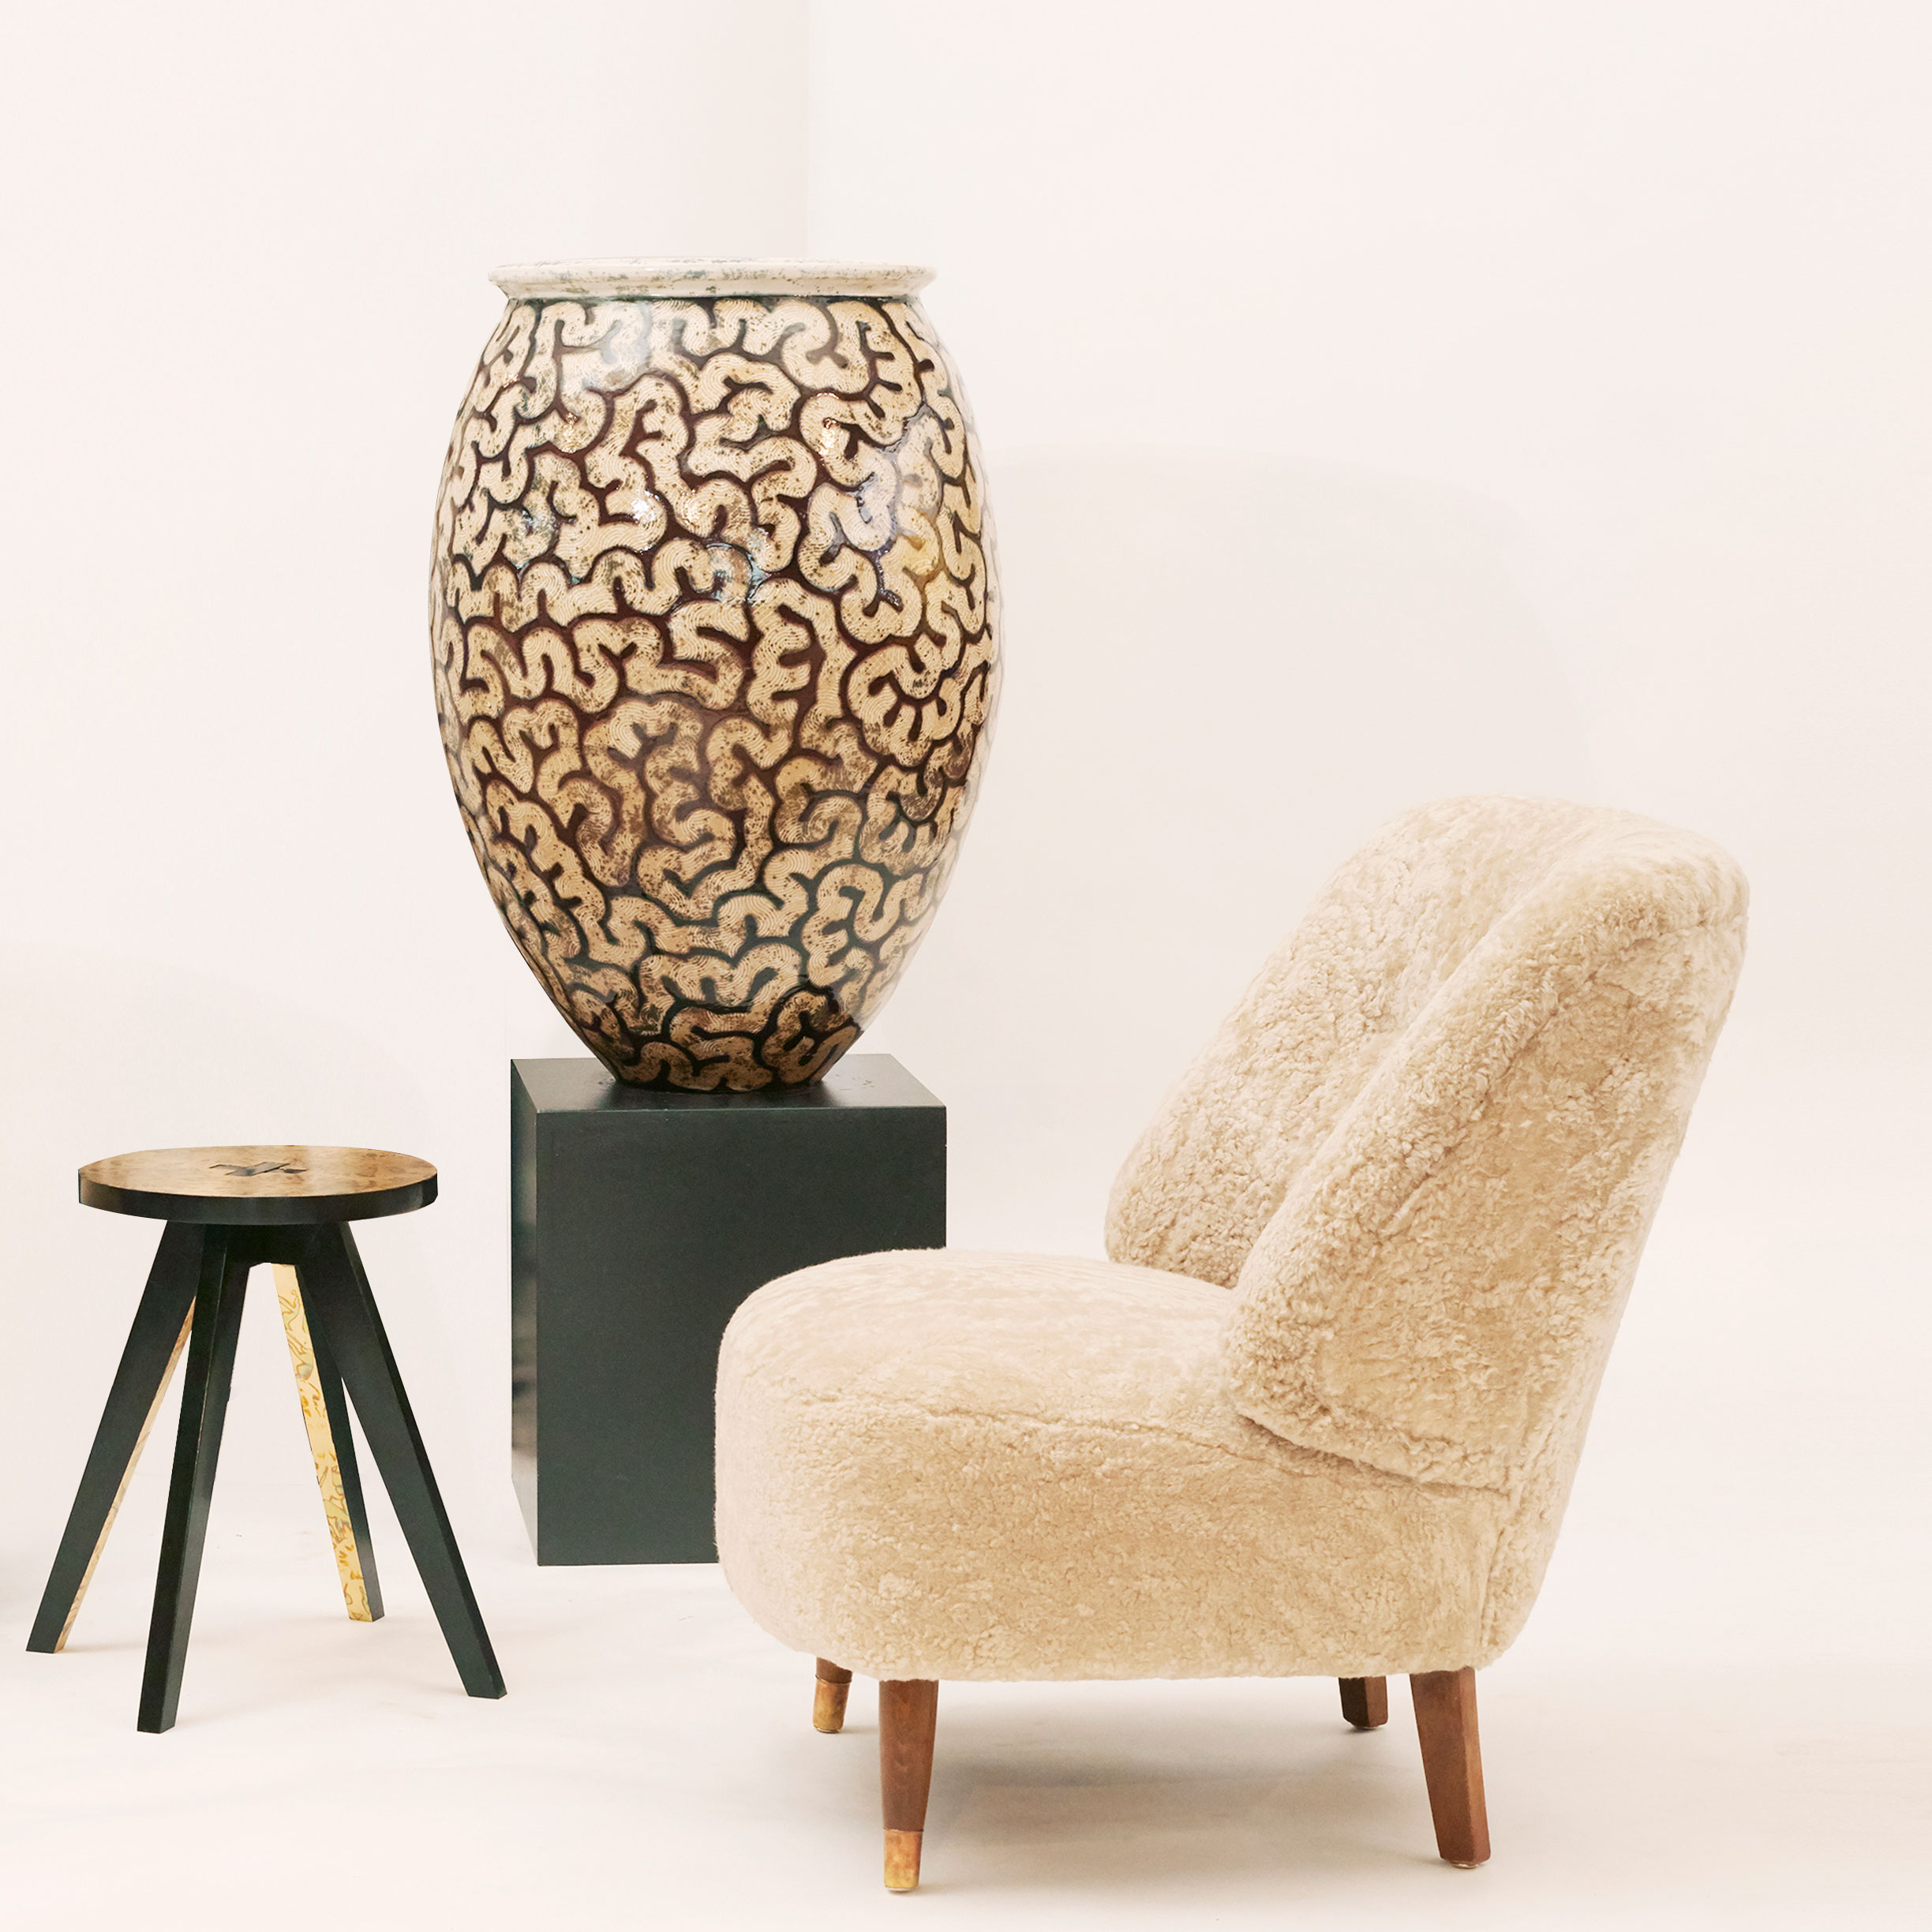 Modern design, ceramics and furniture